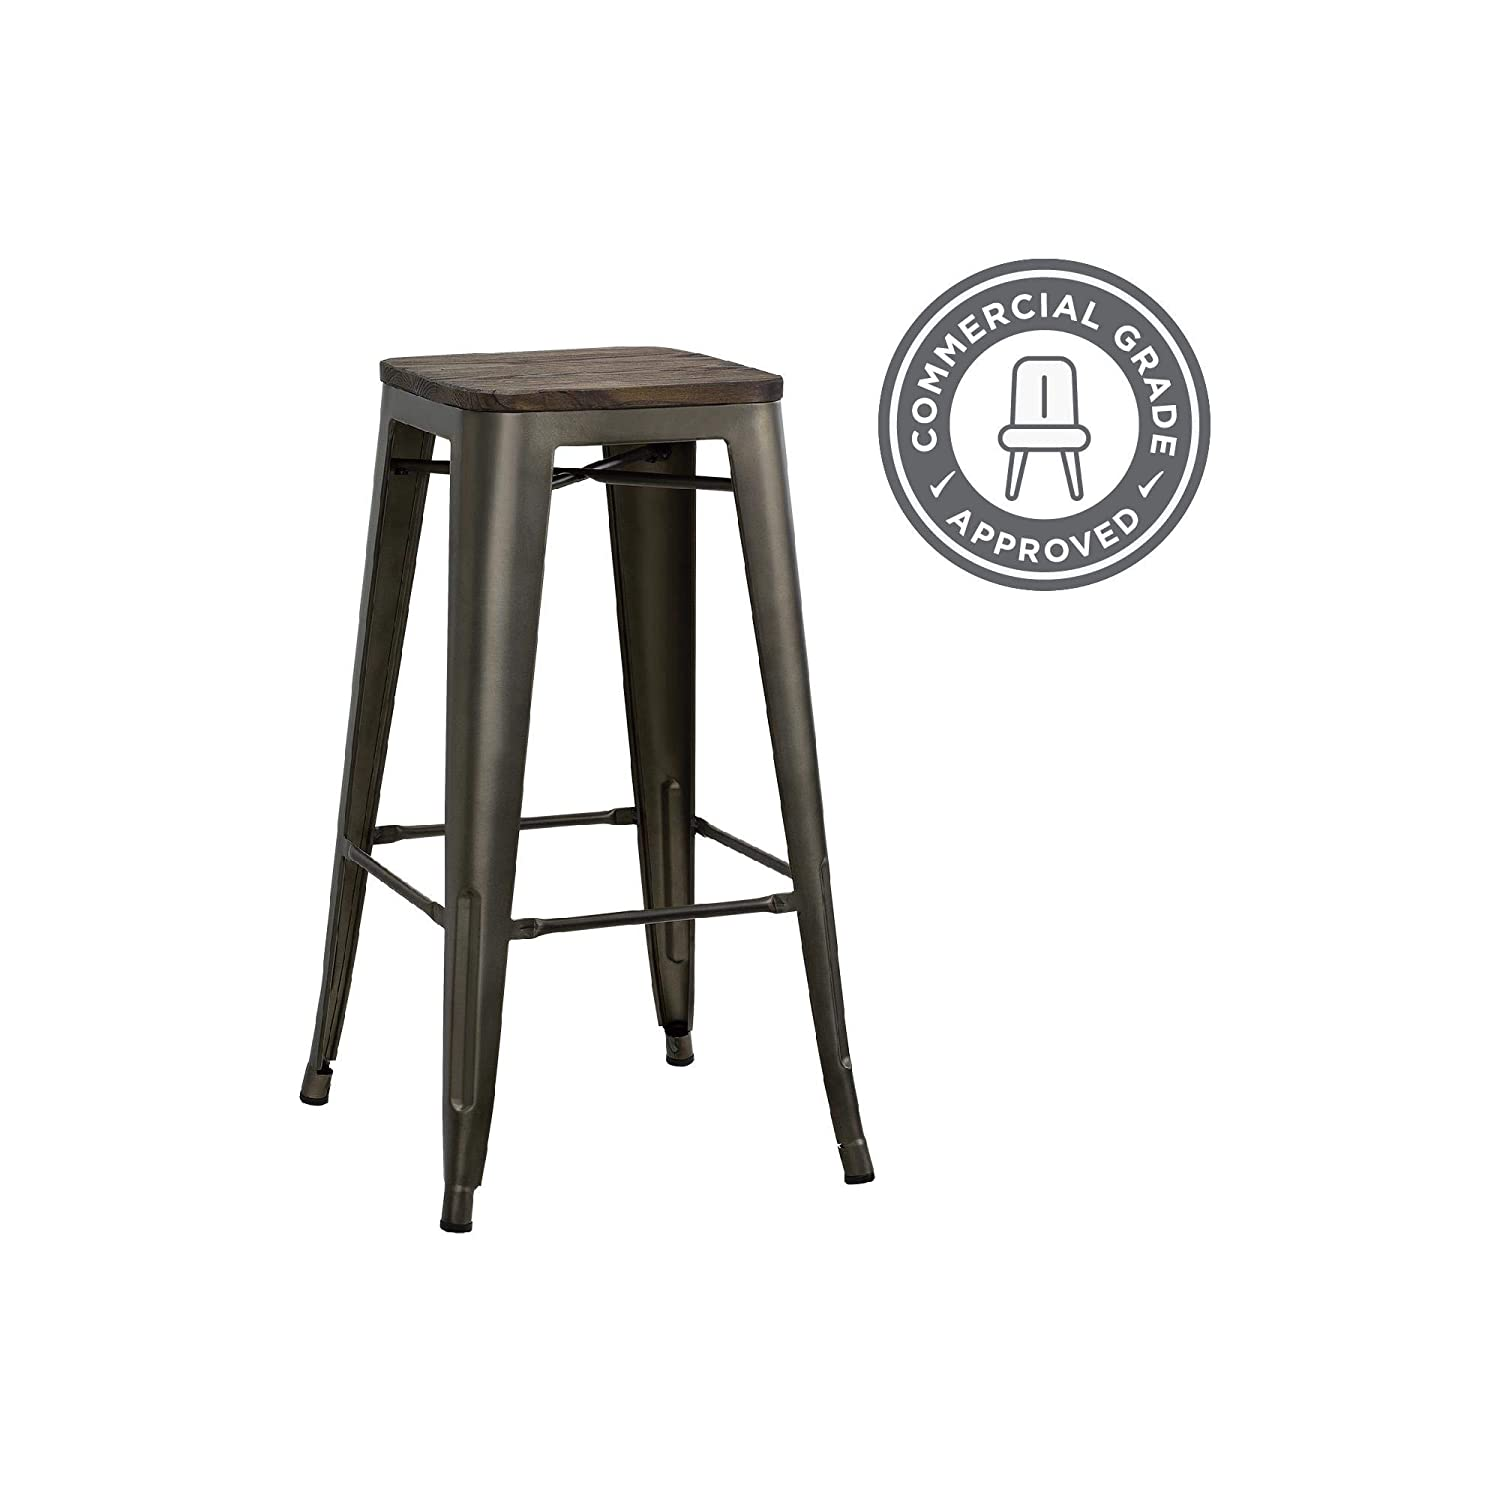 Fabulous Dhp Fusion Metal Backless Bar Stool With Wood Seat Set Of Two 30 Brown Ibusinesslaw Wood Chair Design Ideas Ibusinesslaworg